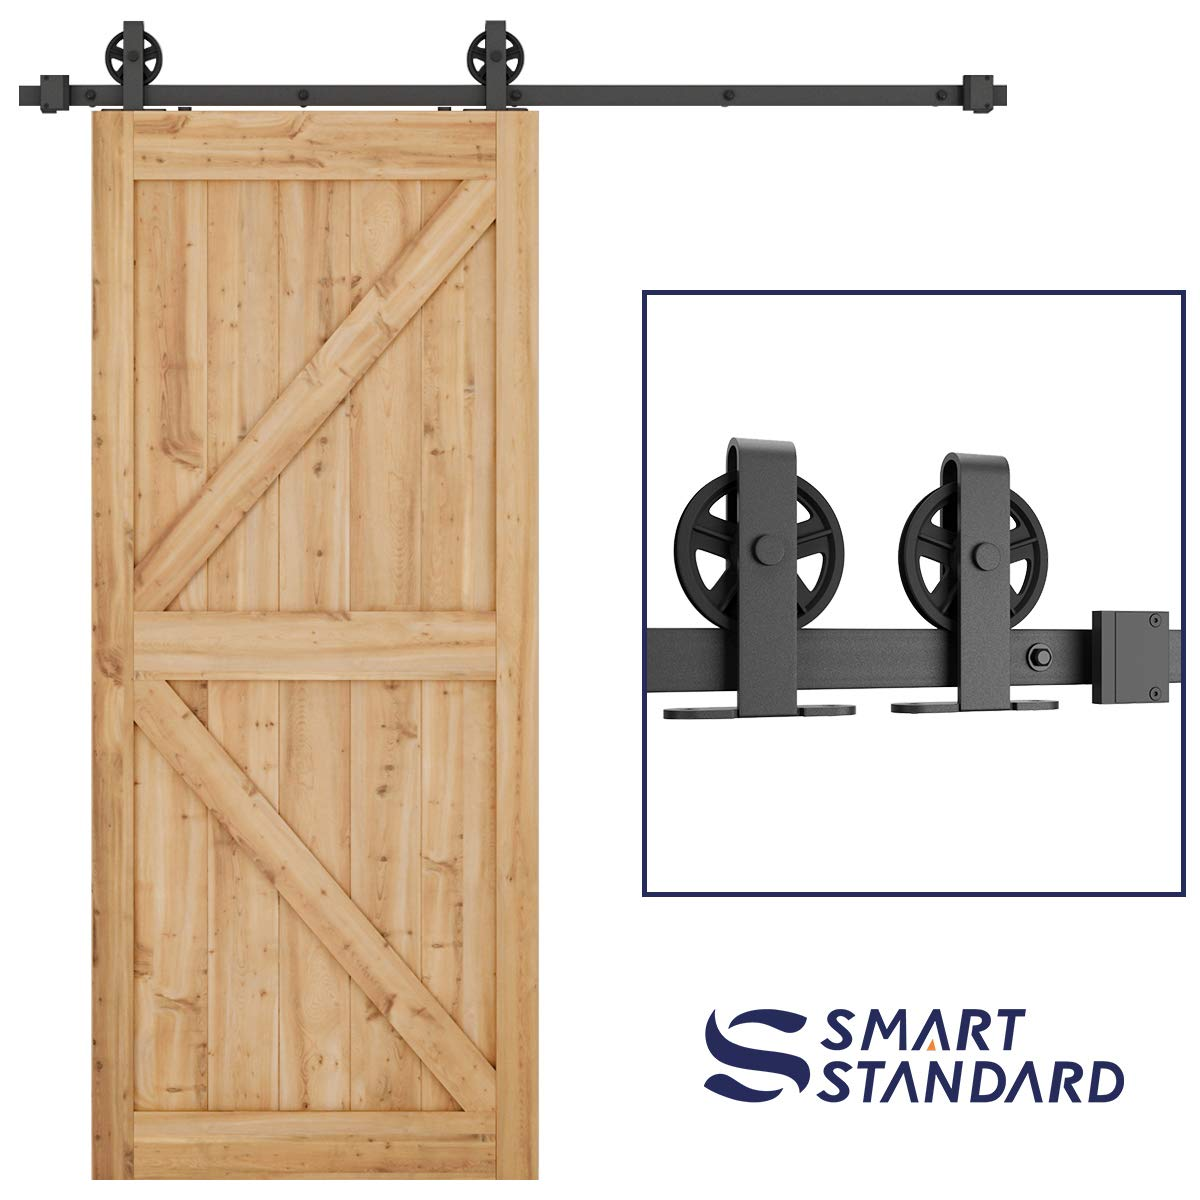 SMARTSTANDARD 6.6ft Heavy Duty Sturdy Sliding Barn Door Hardware Kit -Smoothly & Quietly-Easy to install-Includes Step-By-Step Installation Instruction Fit 40'' Wide Door Panel(Bigwheel T Shape Hanger)